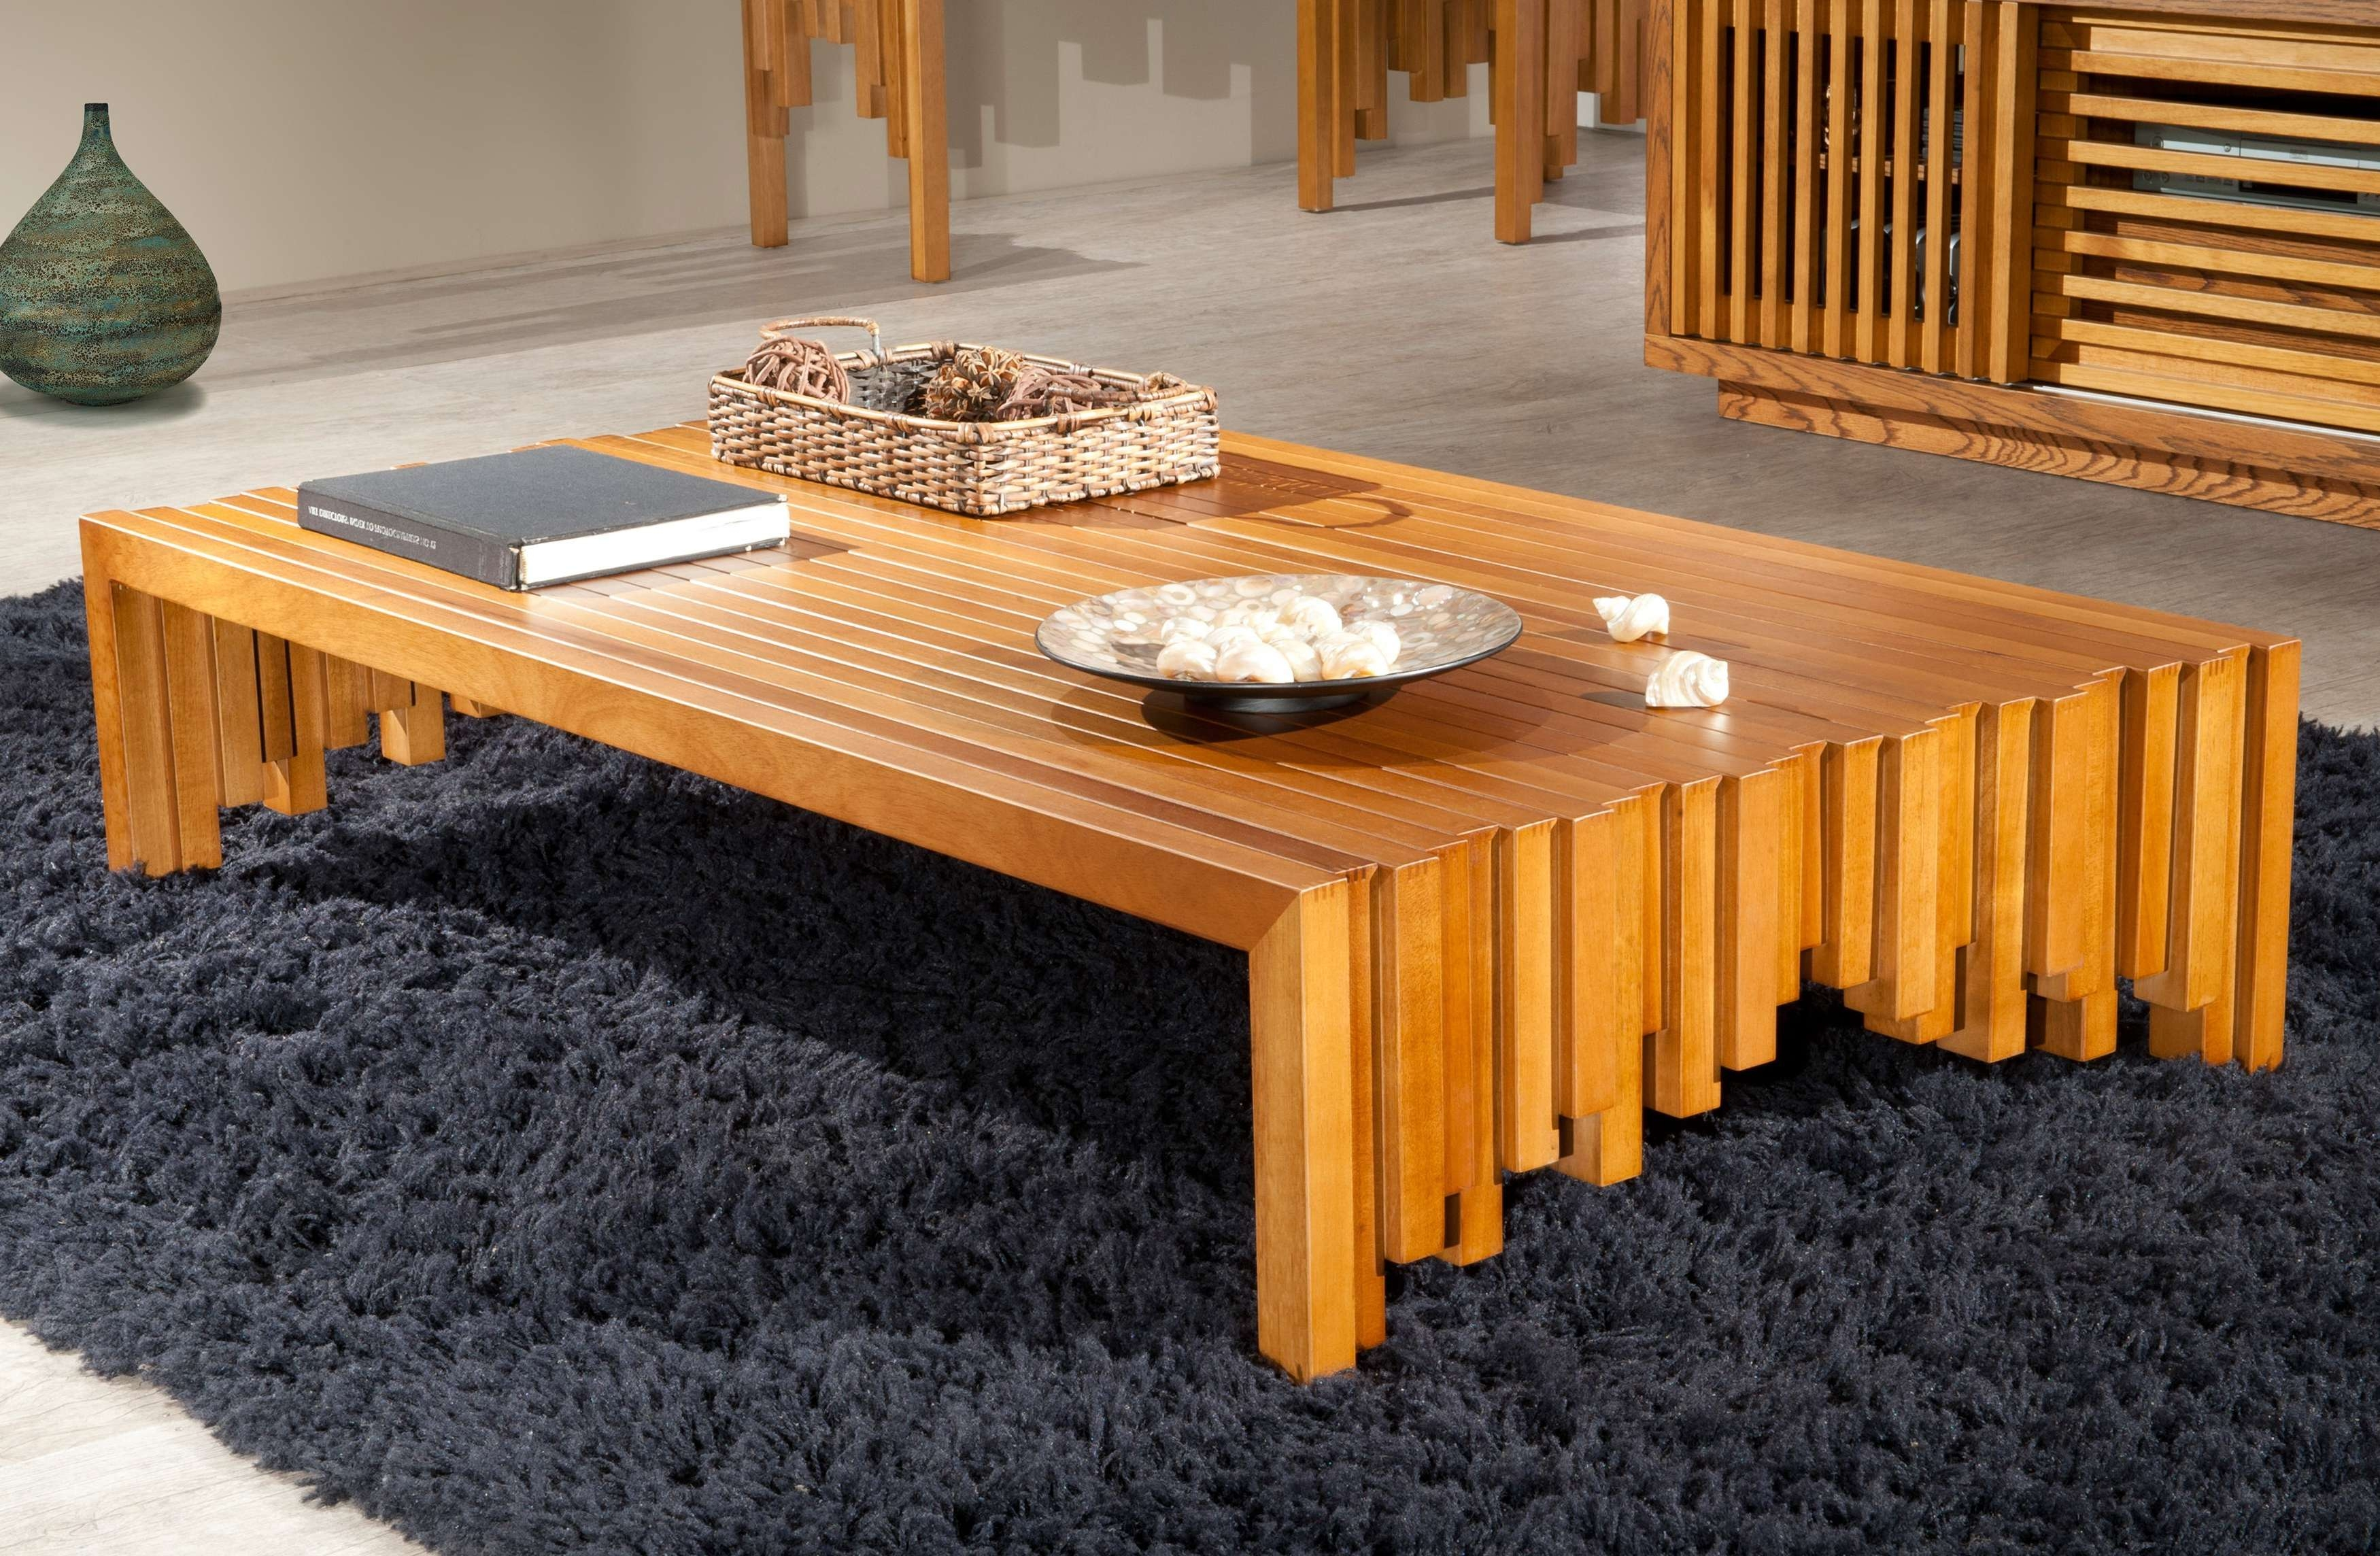 Current Rustic Wooden Coffee Tables With Coffee Tables : Table Rustic Wood Coffee With Metal Legs Modern (View 6 of 20)